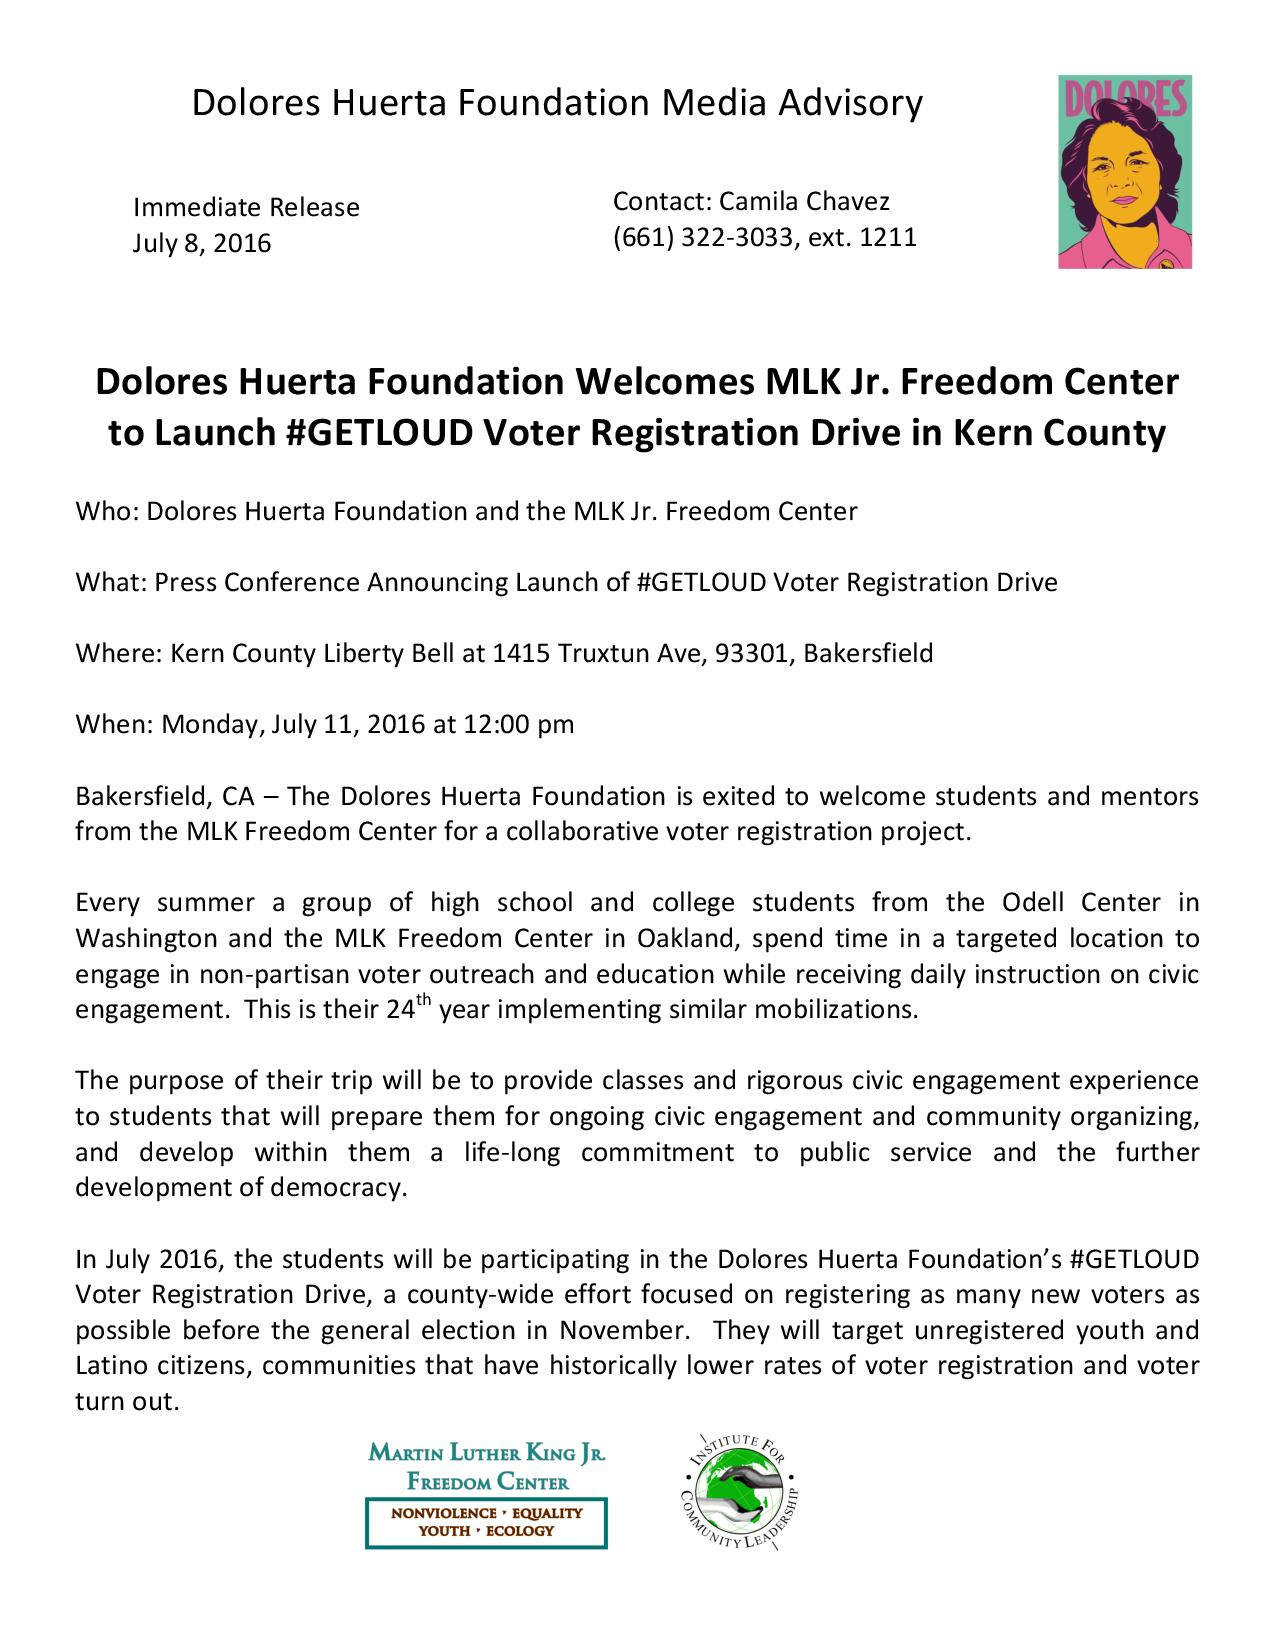 media-advisory-mlk-students-voter-registration-drive-7-16-page-001